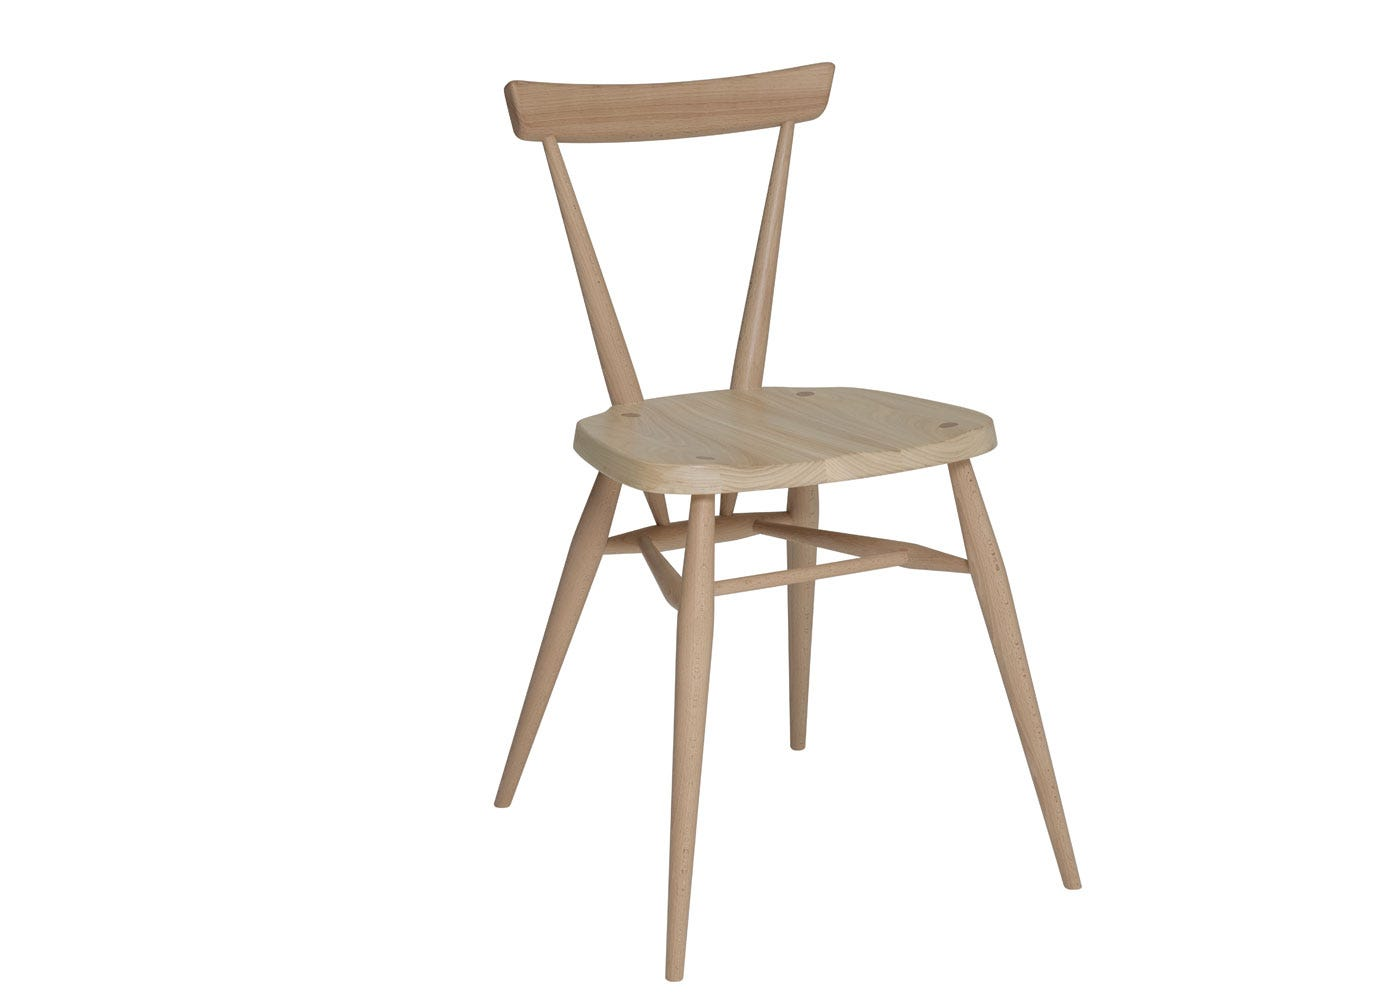 As shown: Originals Stacking Chair Beech and Elm  - Side Profile.